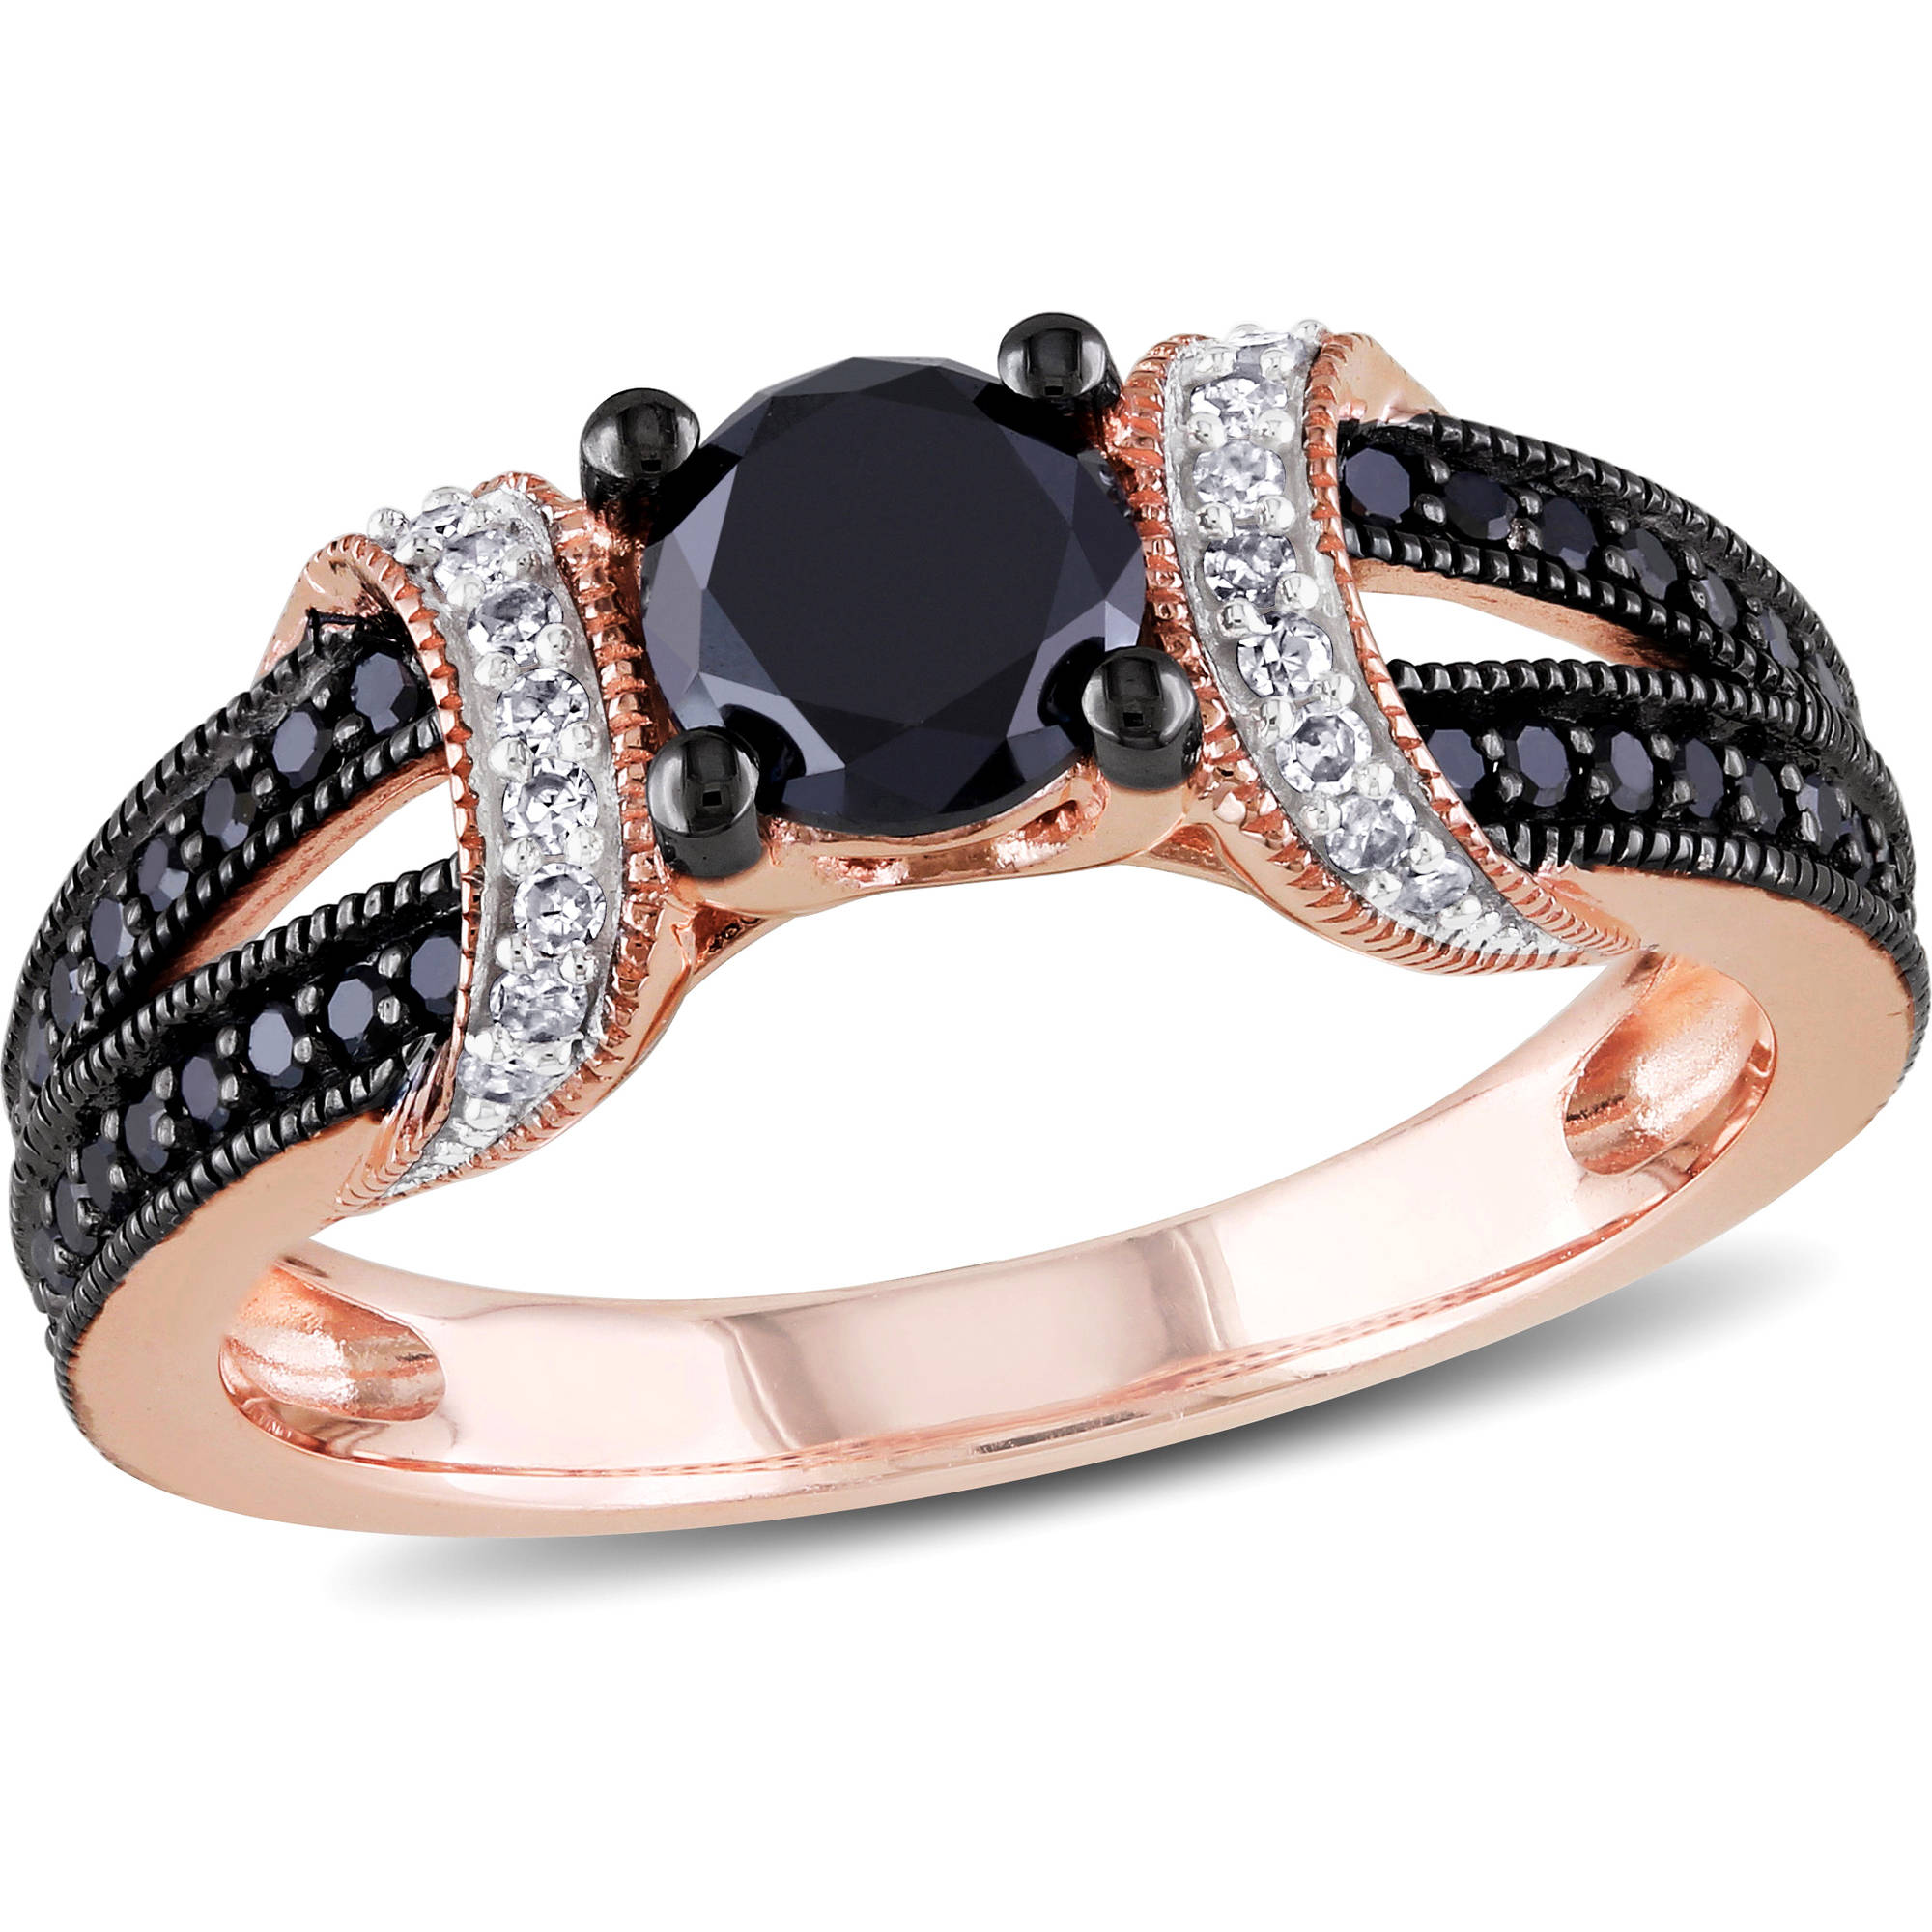 1 Carat Black and White Diamond 10kt Pink Gold Loop Style Engagement Ring